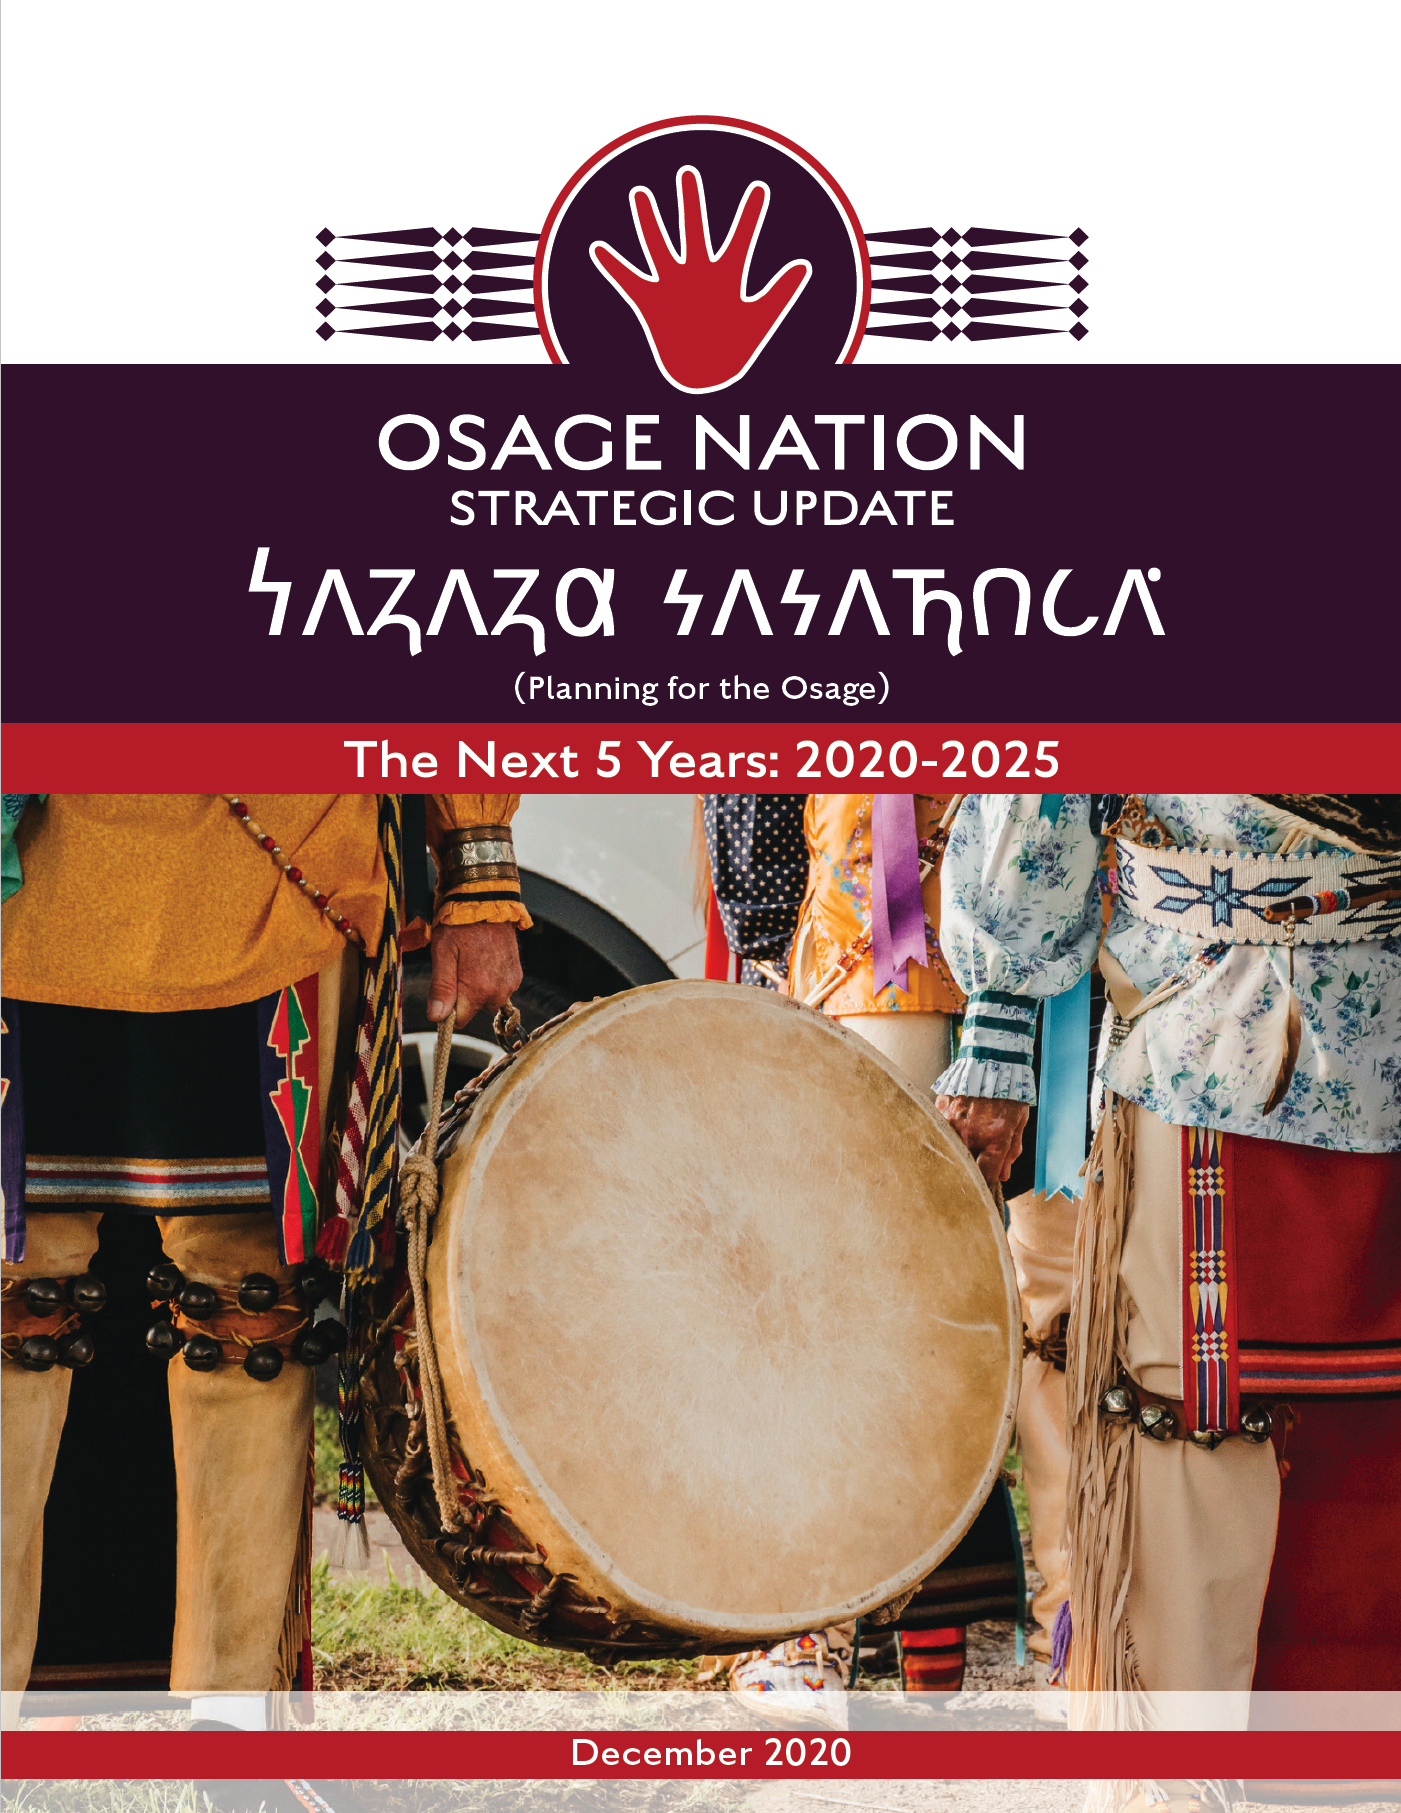 front cover of the December 2020 update to the 25-year strategic plan for Osage Nation